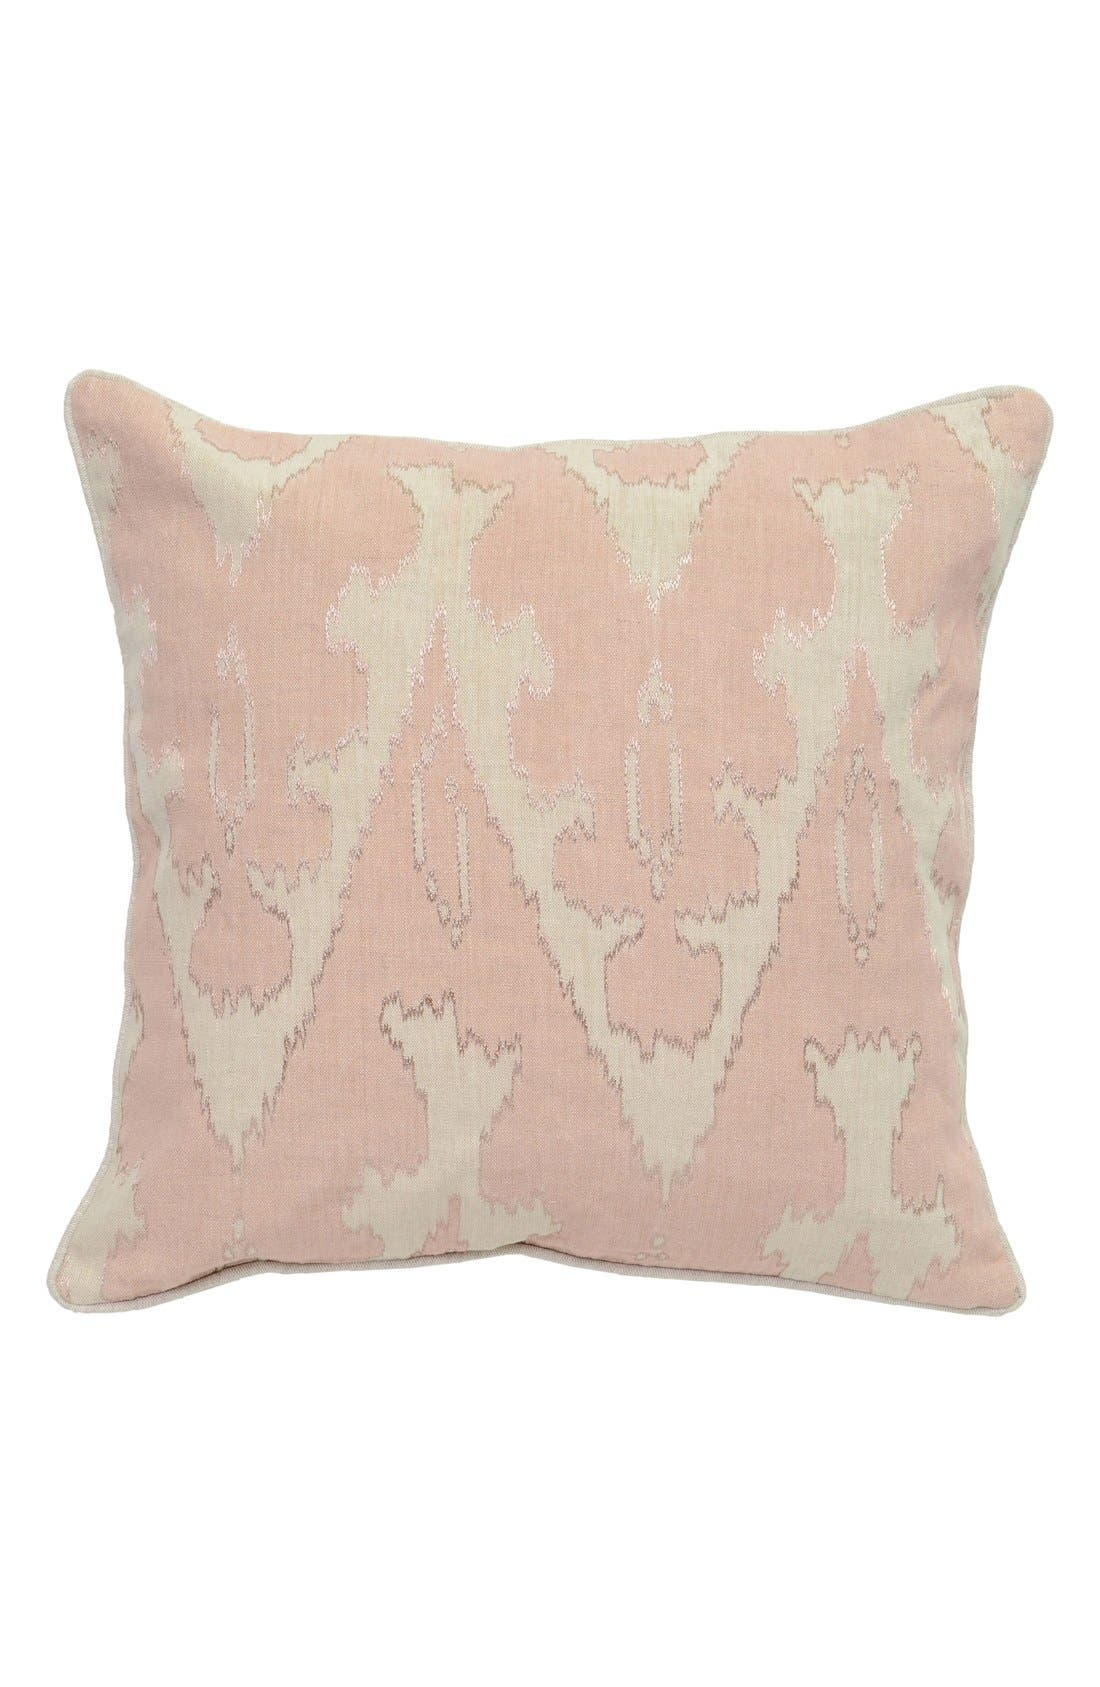 Fae Accent Pillow,                             Main thumbnail 1, color,                             Beige/ Blush